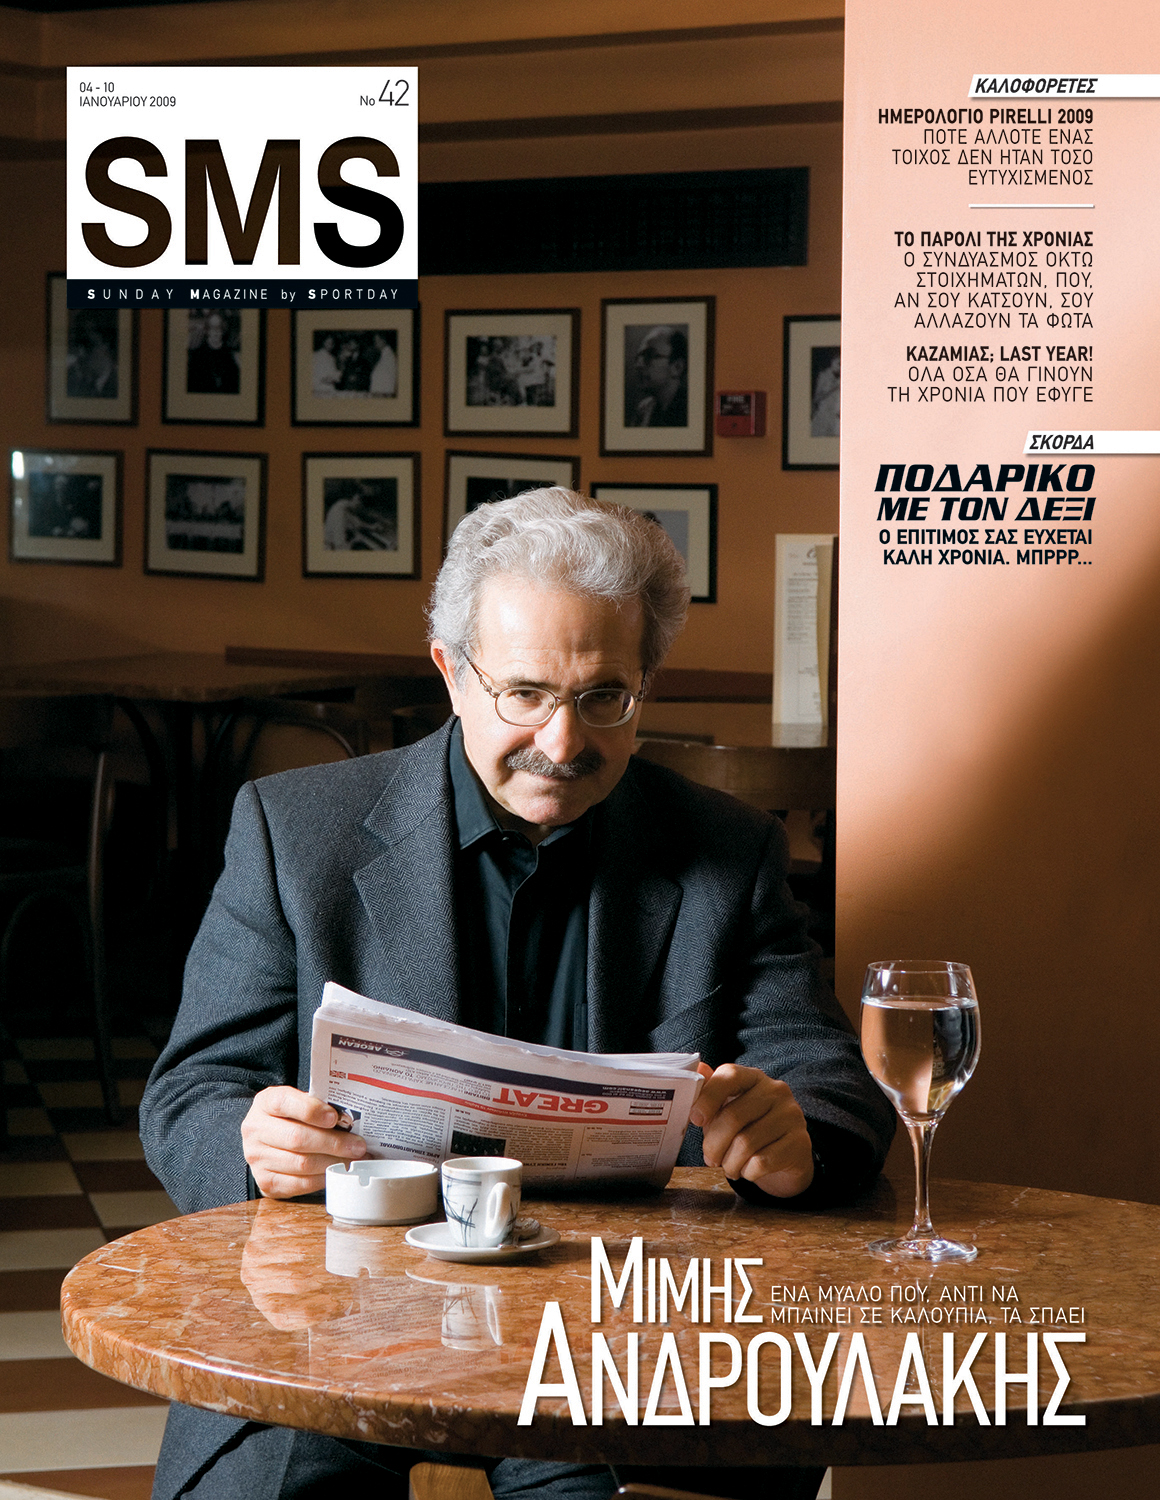 Mimis Androulakis / author-politician / SMS Sportday No 42